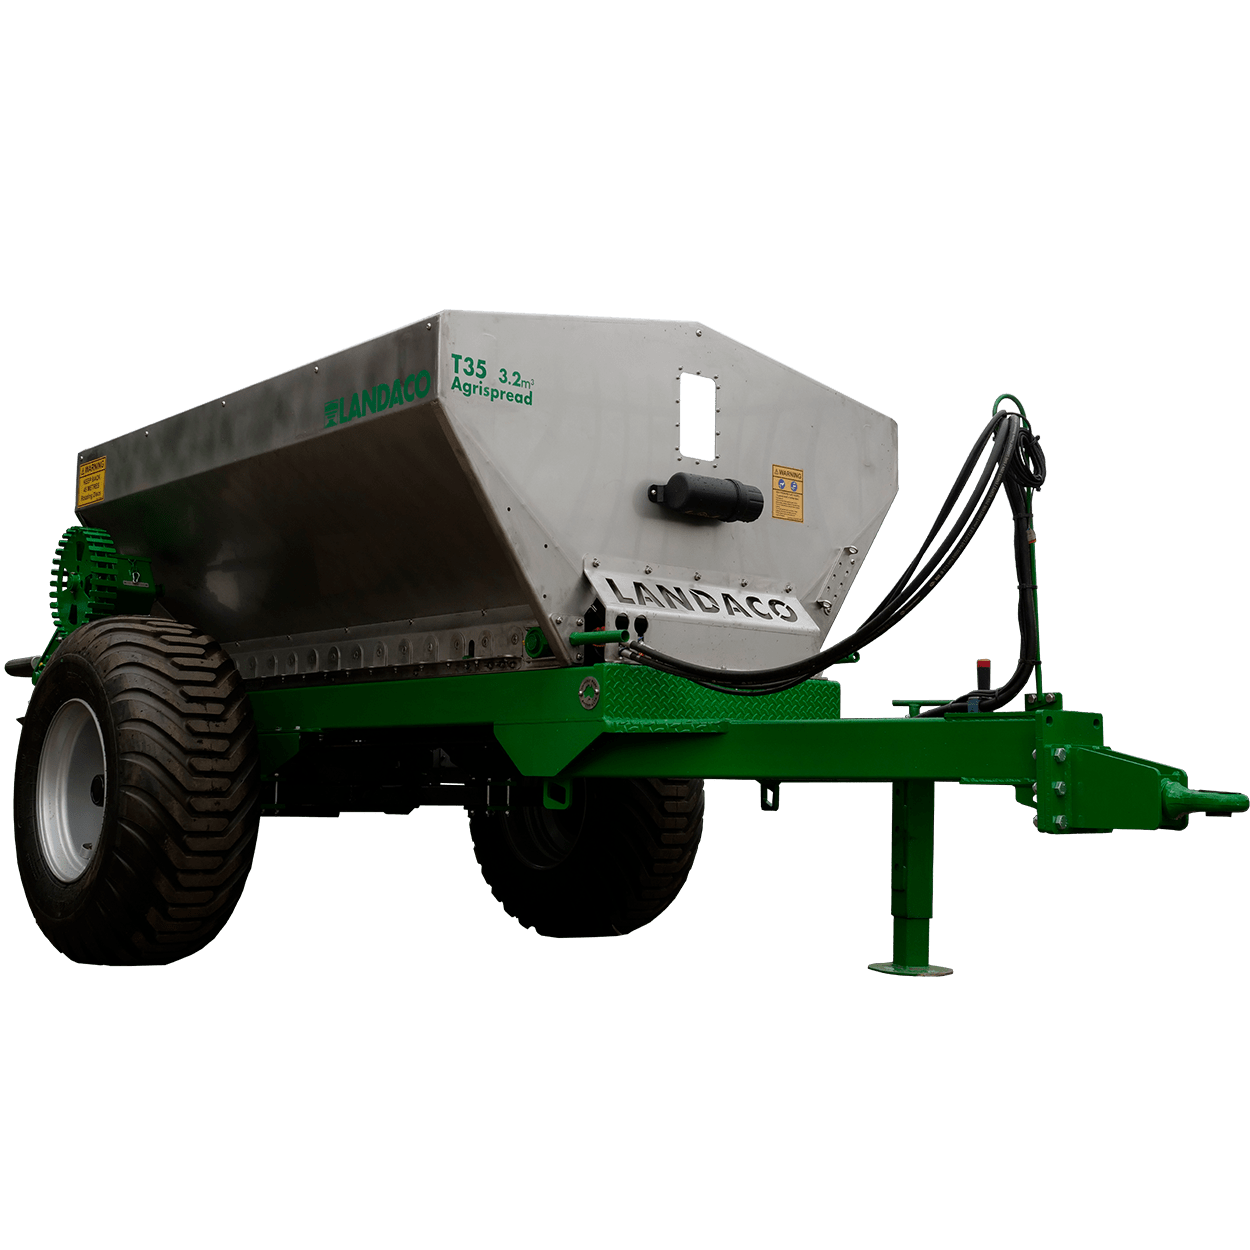 Agrispread T35 Spreader - Product gallery image